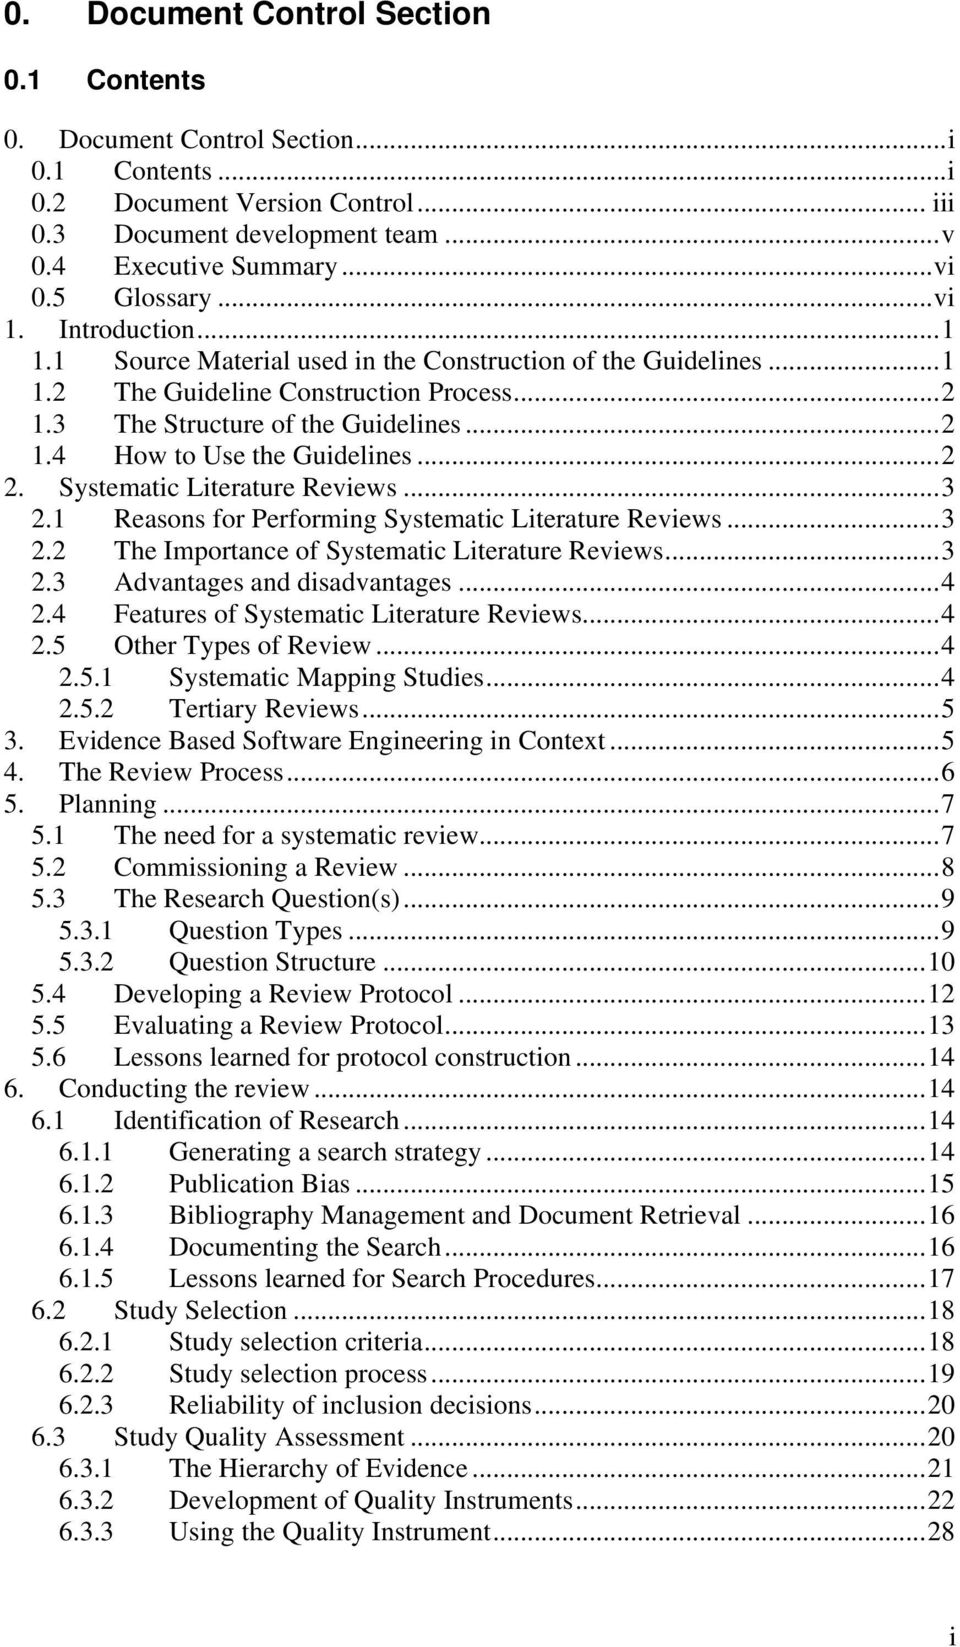 ..2 2. Systematic Literature Reviews...3 2.1 Reasons for Performing Systematic Literature Reviews...3 2.2 The Importance of Systematic Literature Reviews...3 2.3 Advantages and disadvantages...4 2.